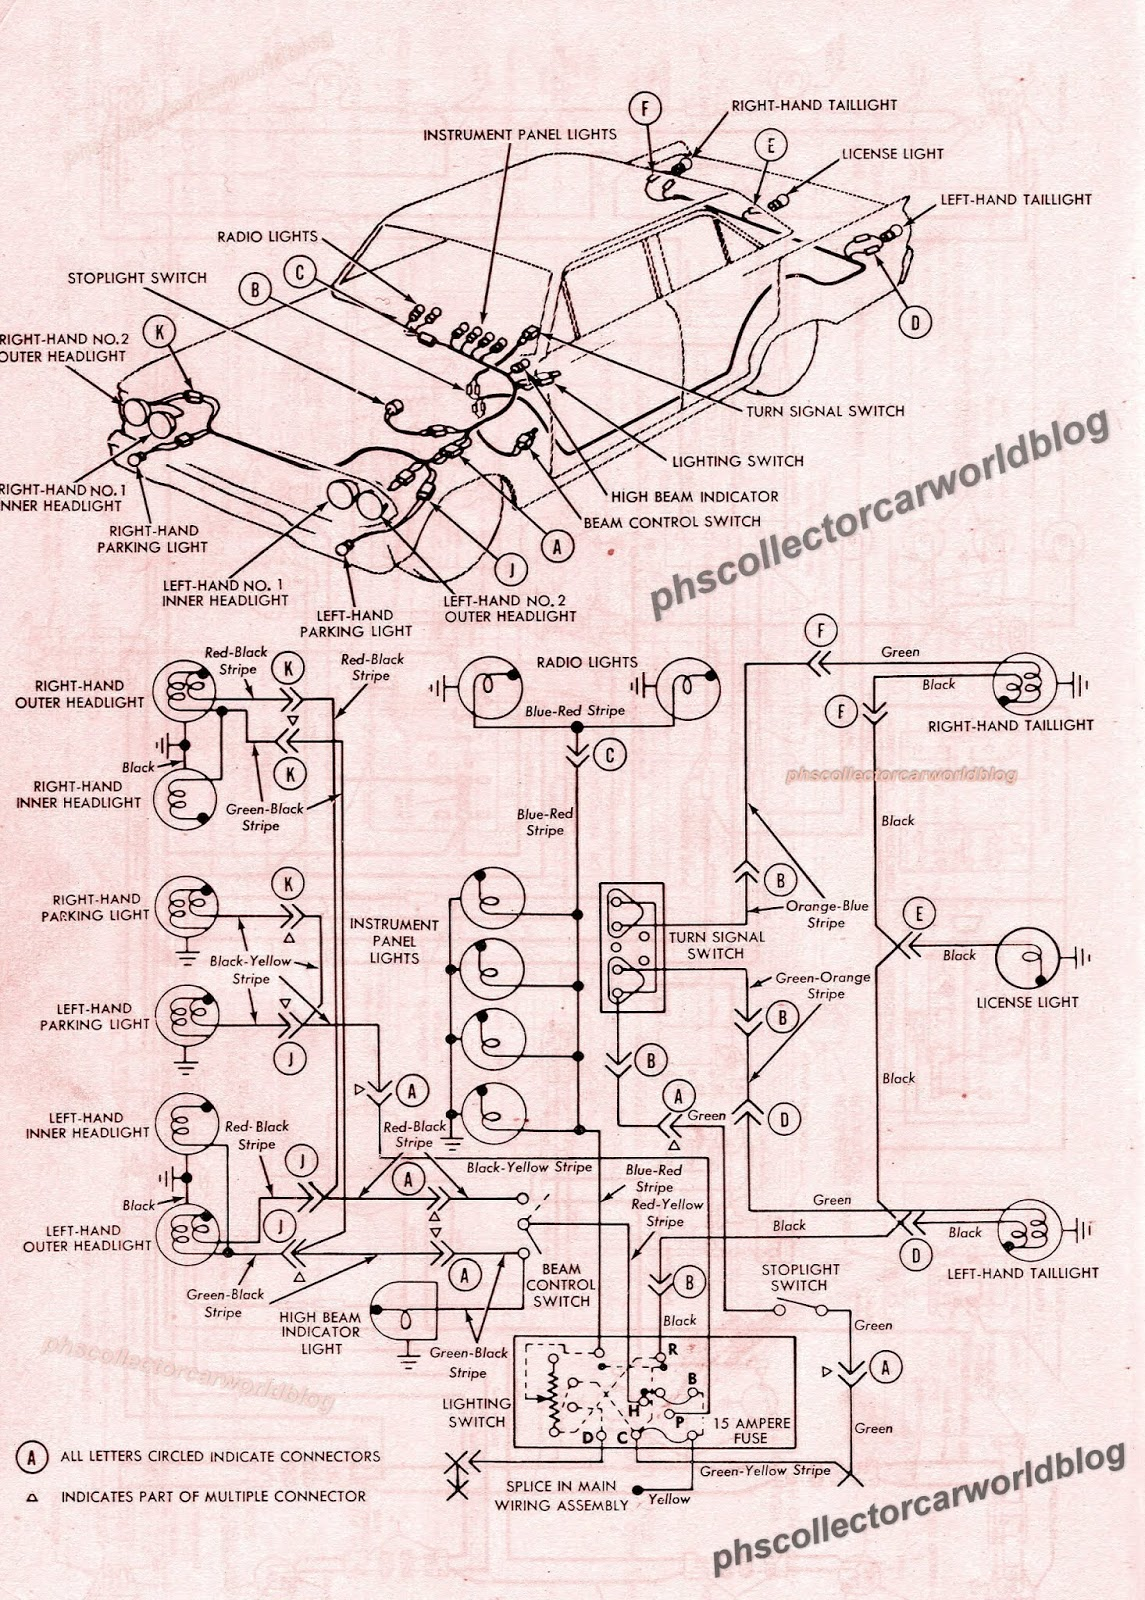 phscollectorcarworld: PHS Tech Series: 1962-1964 Fairlane Wiring Schematic | Ford Fairlane Engine Wiring Diagram |  | phscollectorcarworld